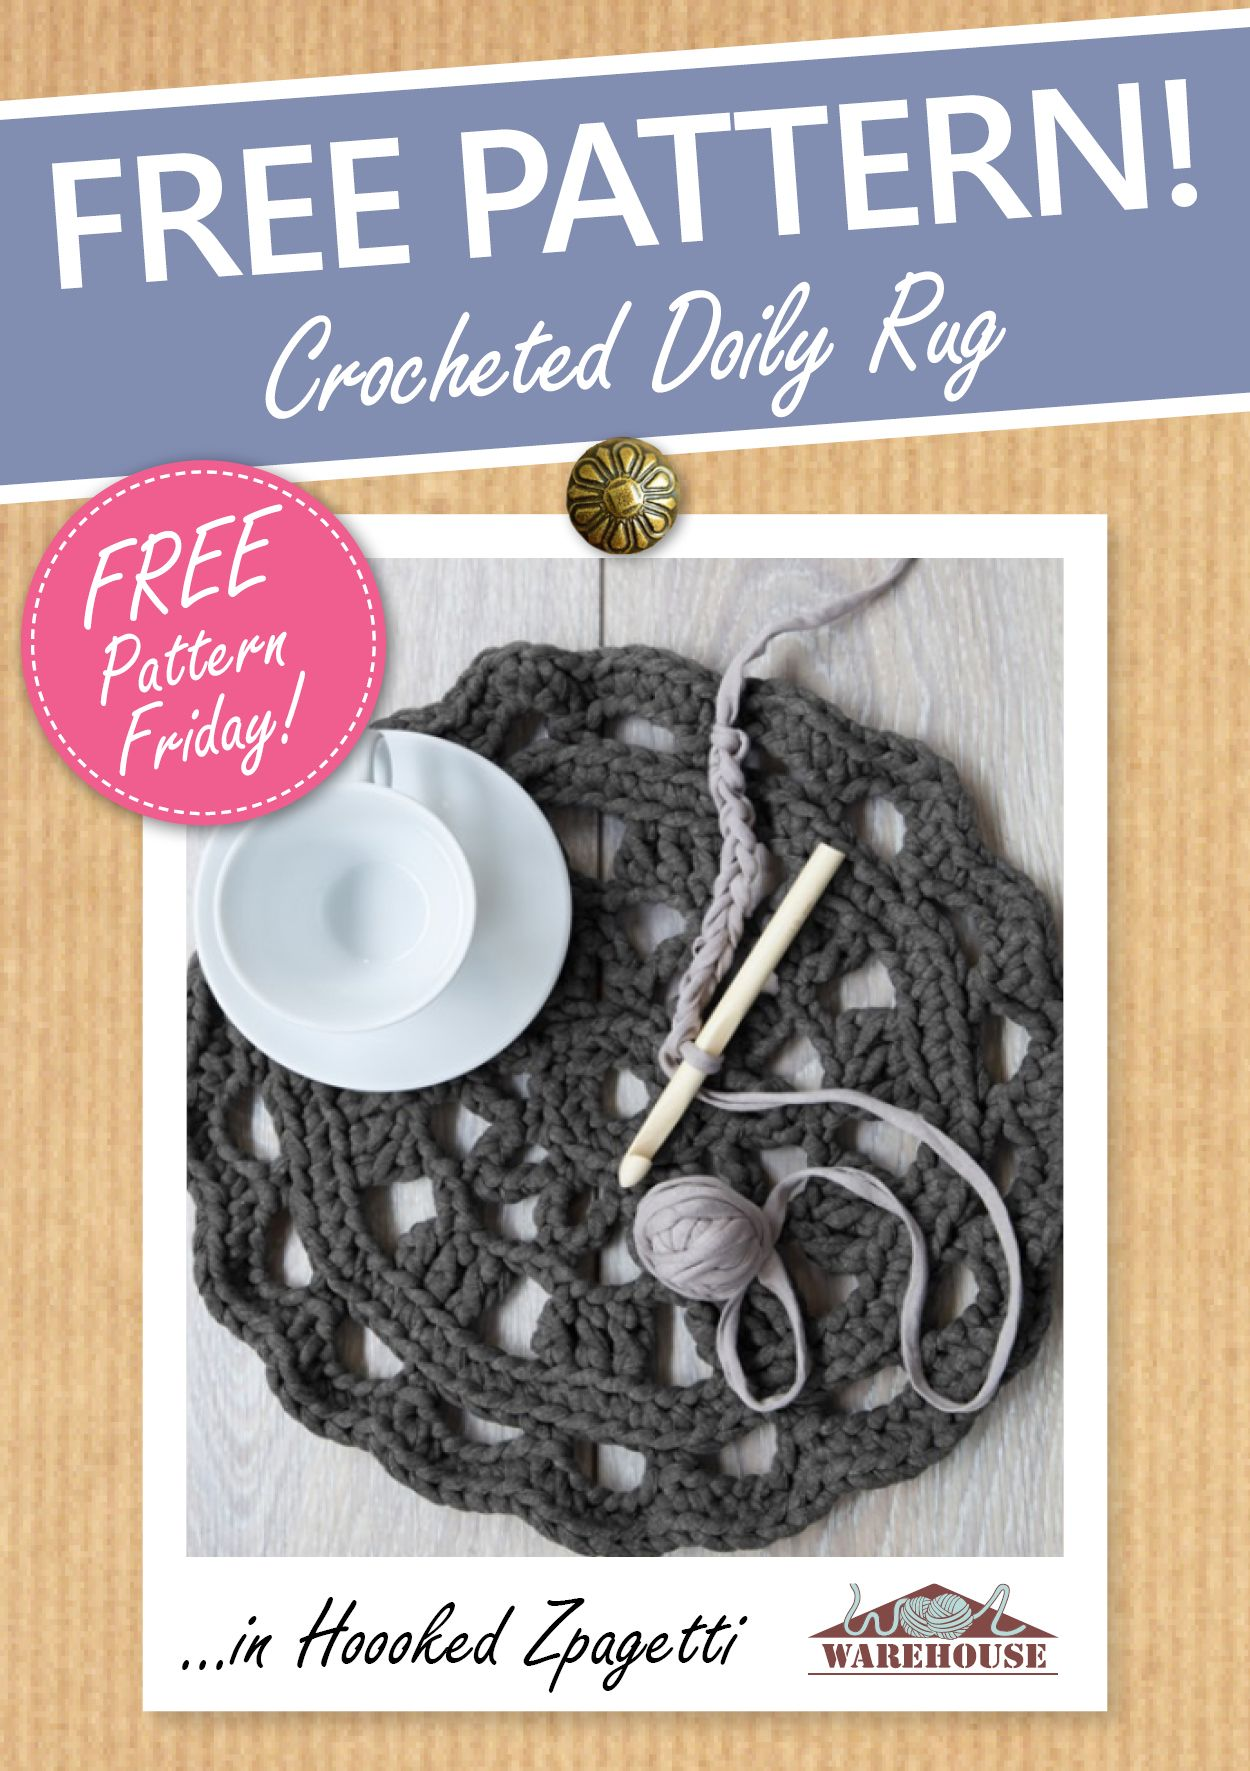 The fabulous hoooked zpagetti is great for crocheting rugs crochet zpagetti is great for crocheting rugs free doily rug pattern bankloansurffo Choice Image